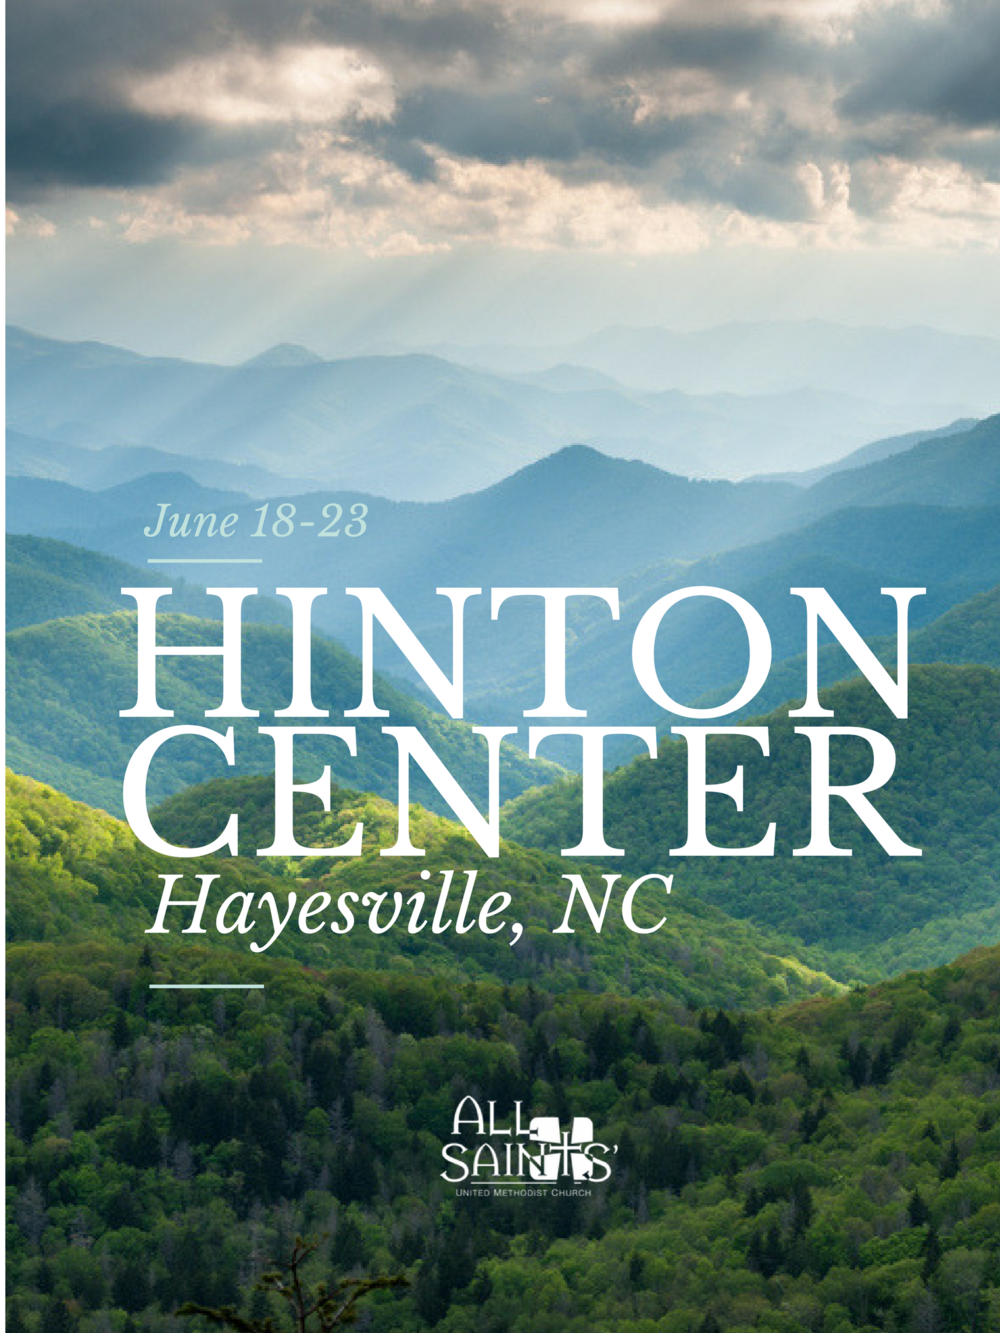 Copy of Hinton Center Flyer.png